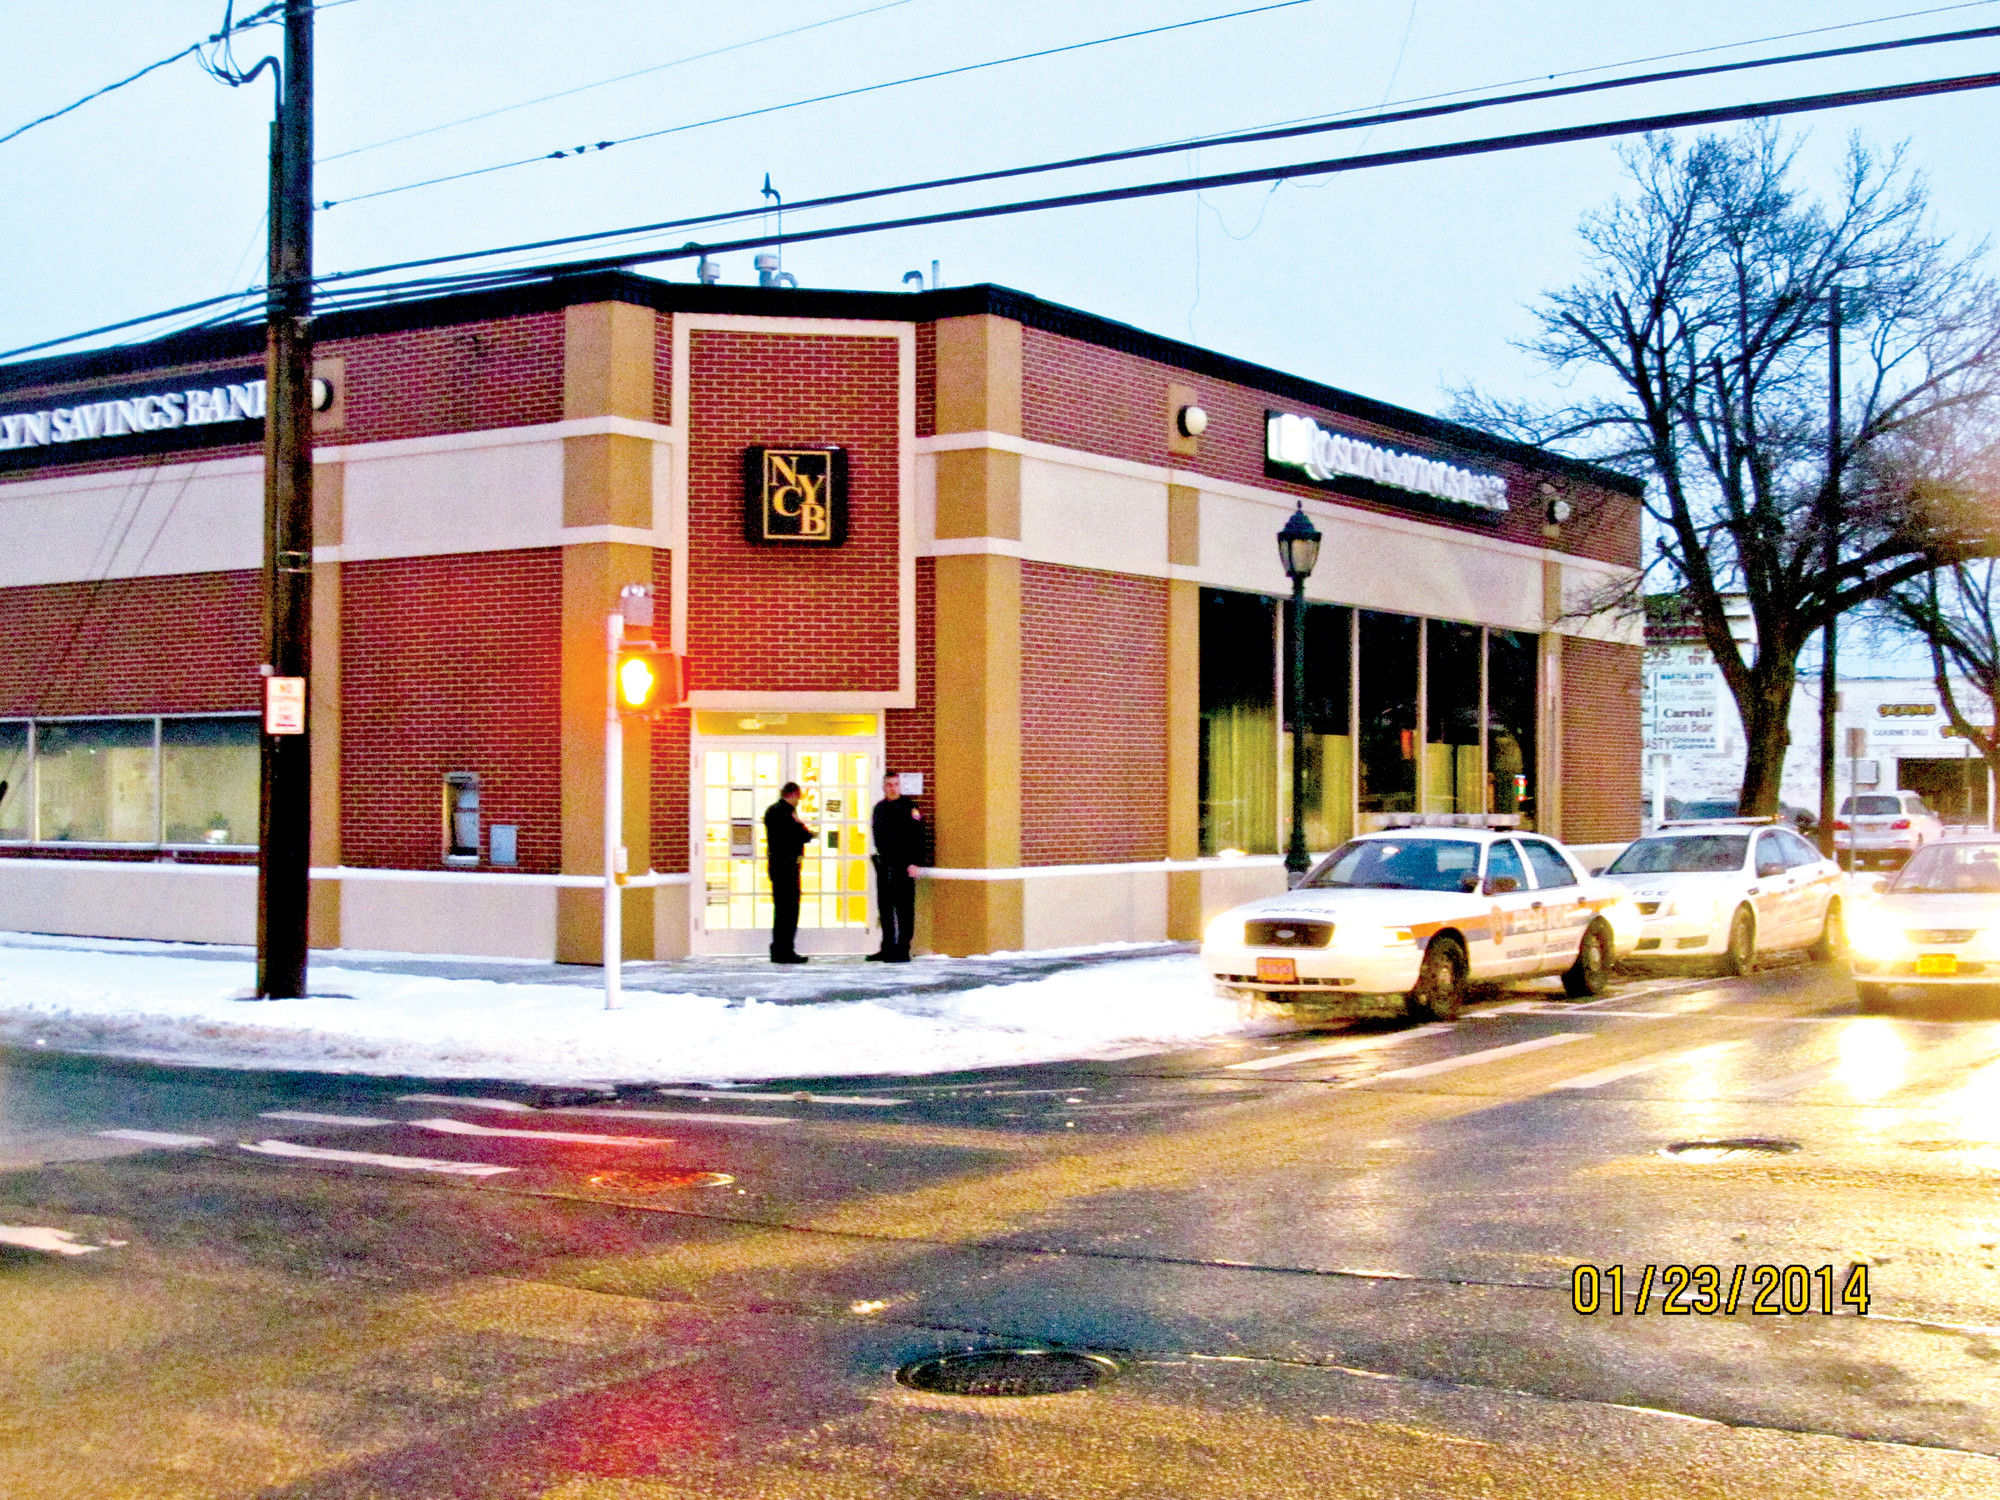 Police officers responded on Jan. 23 to Roslyn Savings Bank at Merrick Avenue and Smith Street after a robbery occurred there.